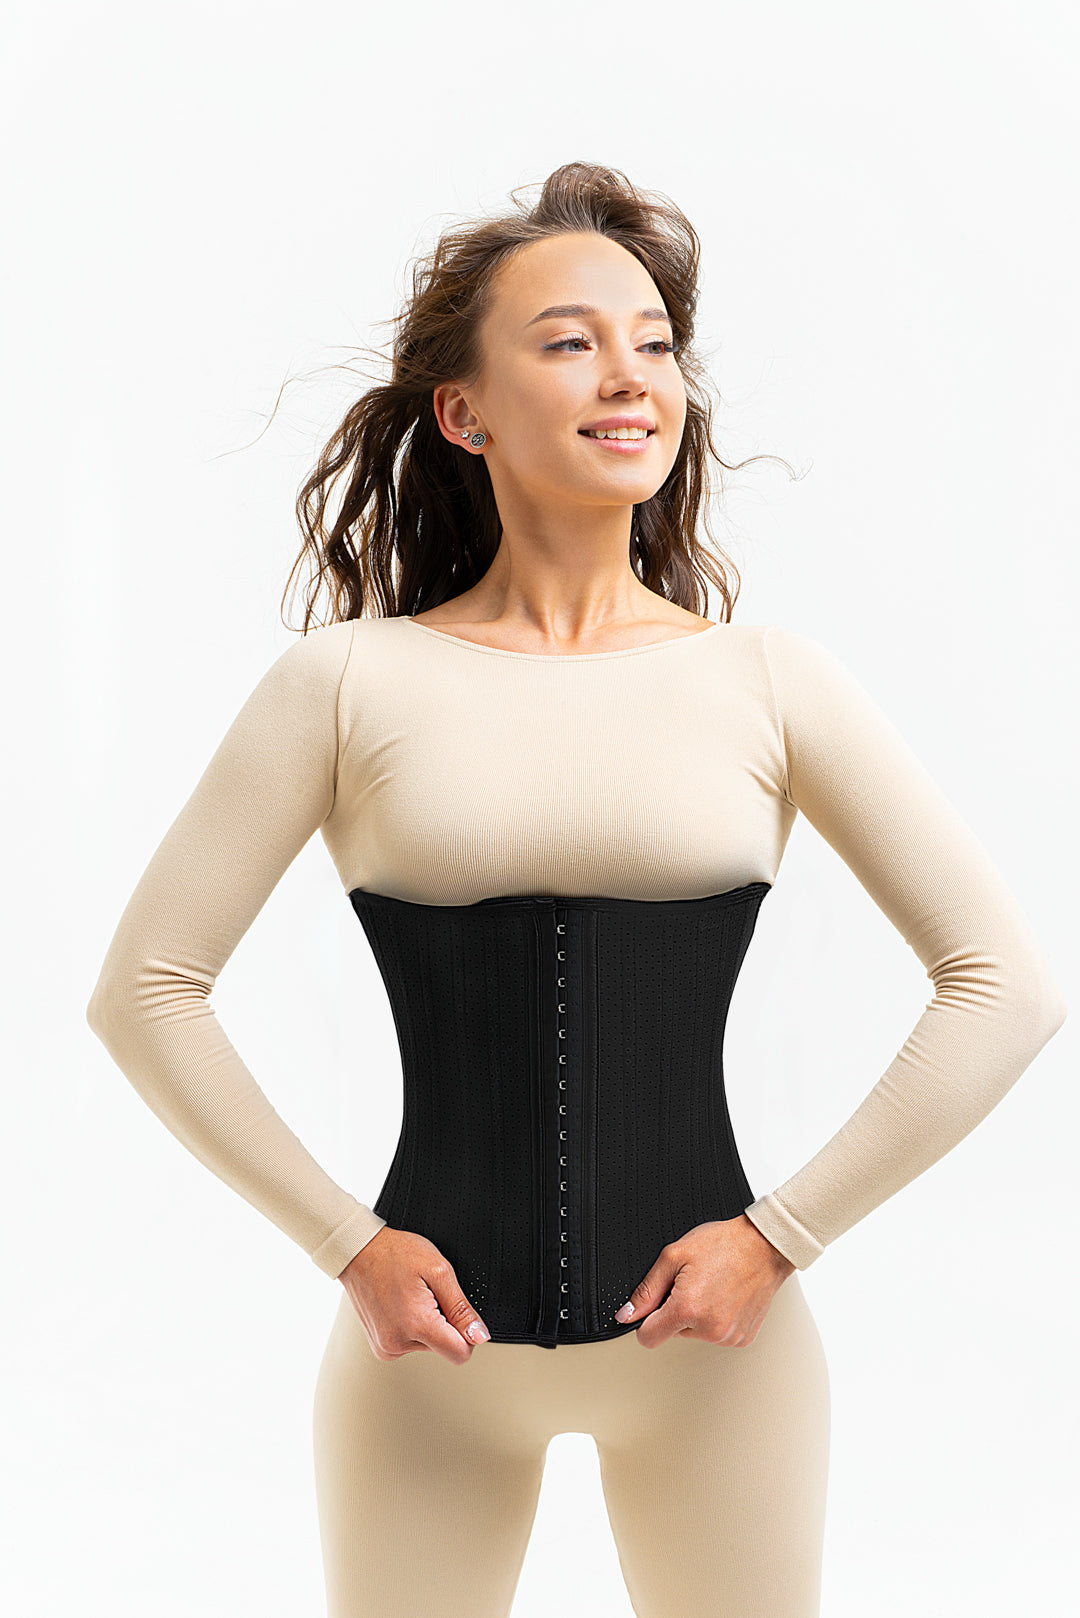 GORBEL Latex Sport Waist Trainer